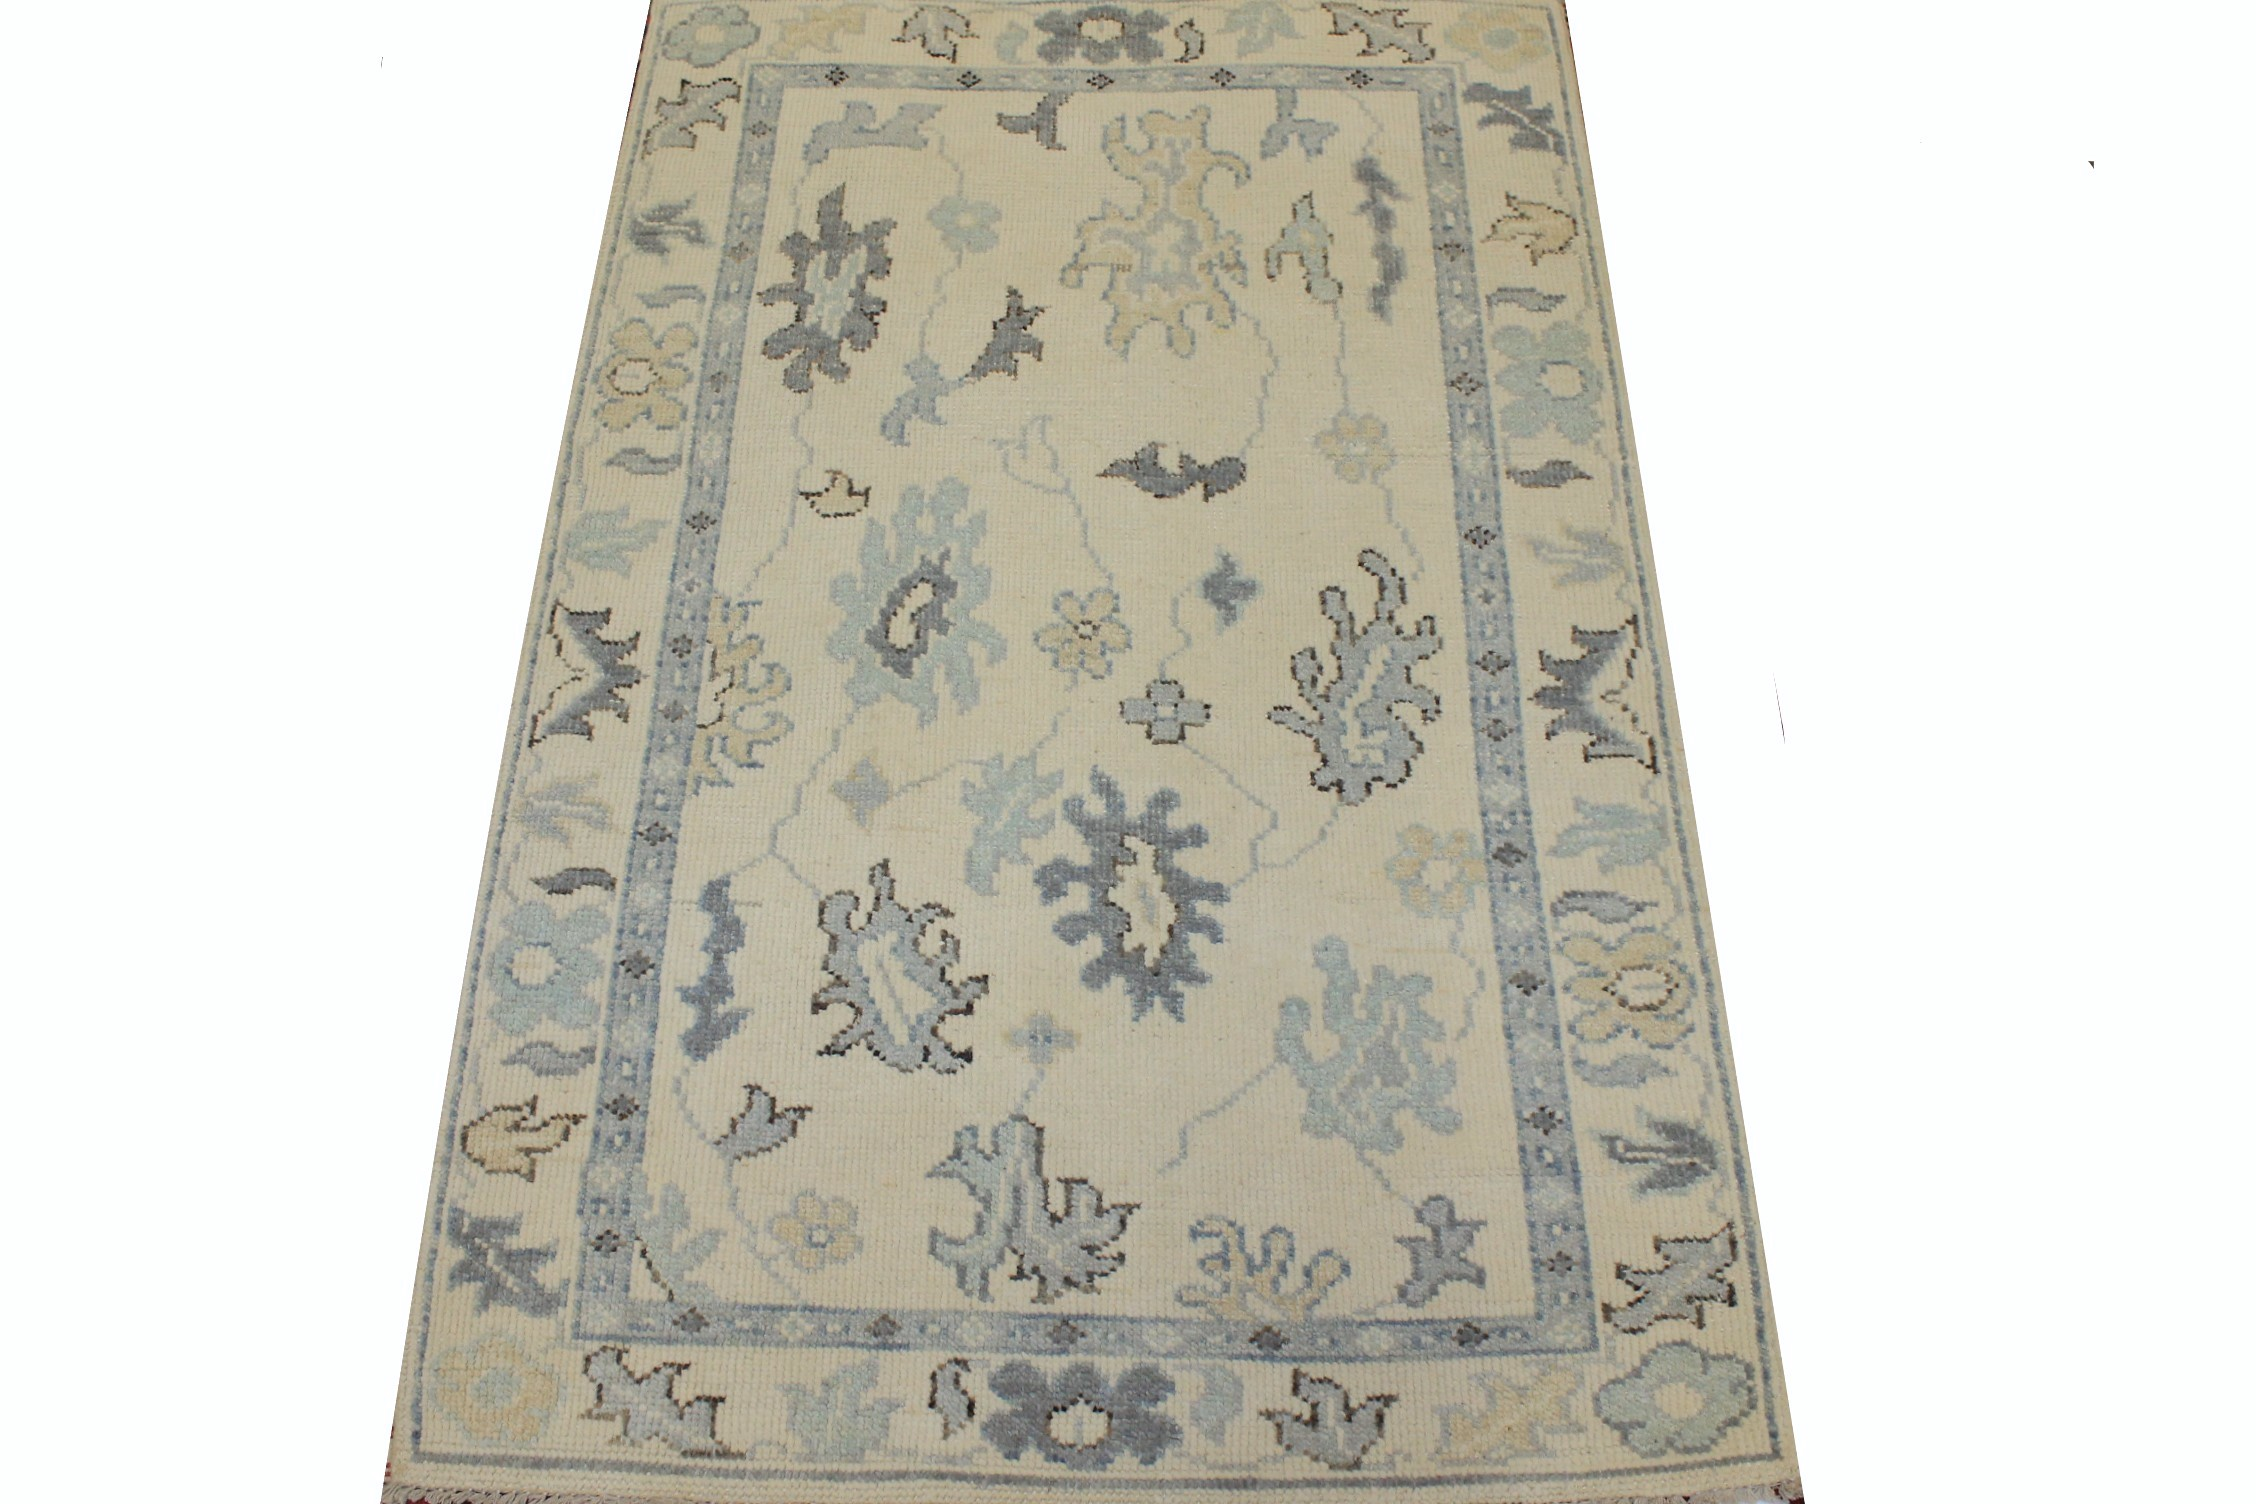 3x5 Oushak Hand Knotted Wool Area Rug - MR025335